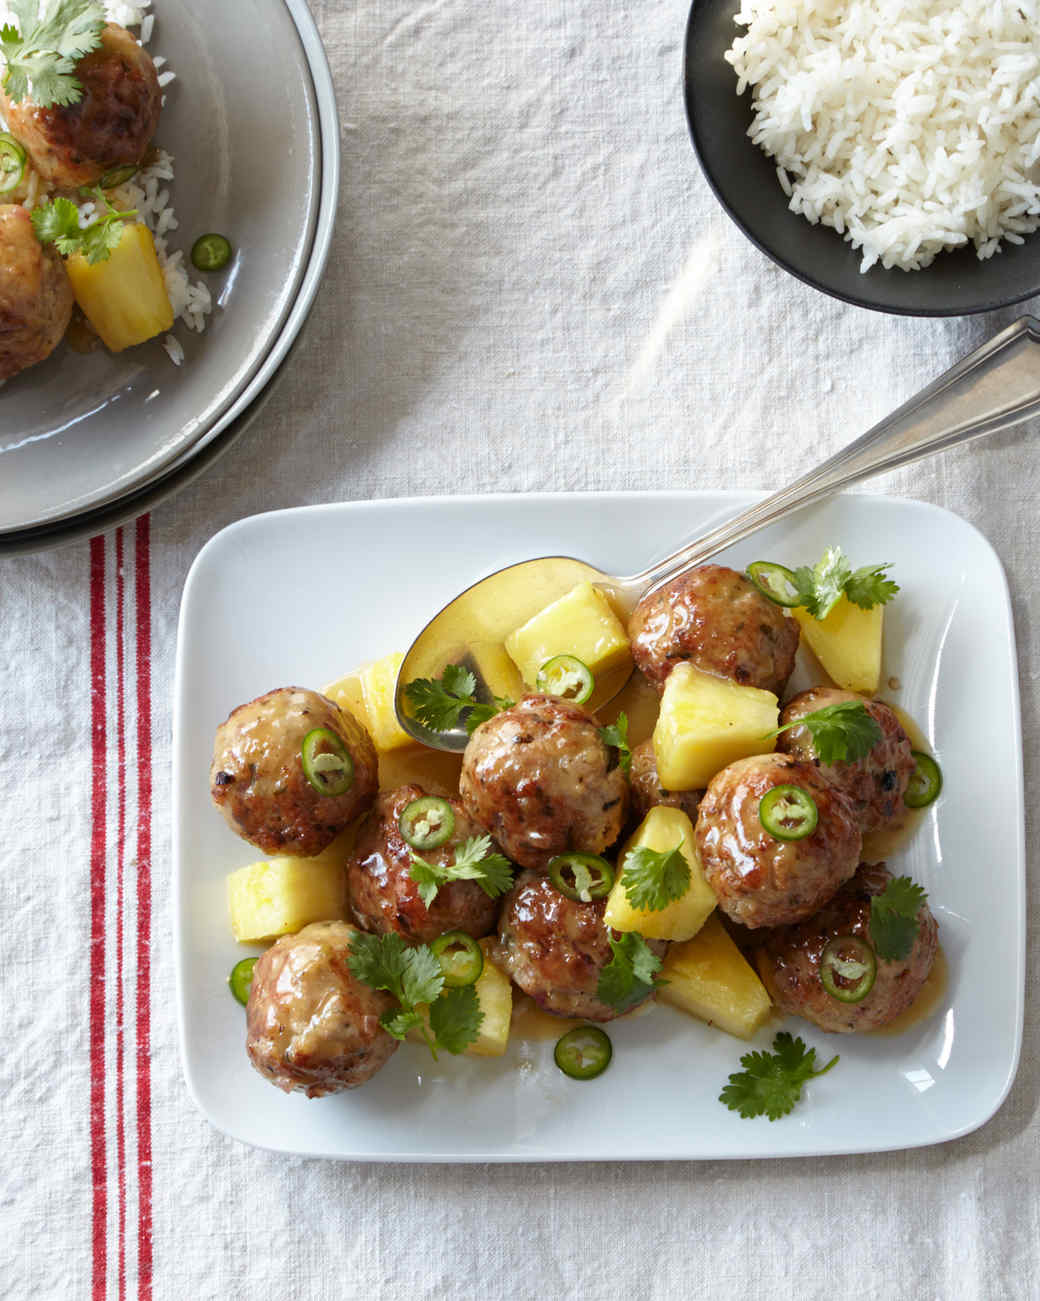 hawaiian-meatballs-0065-d112283.jpg